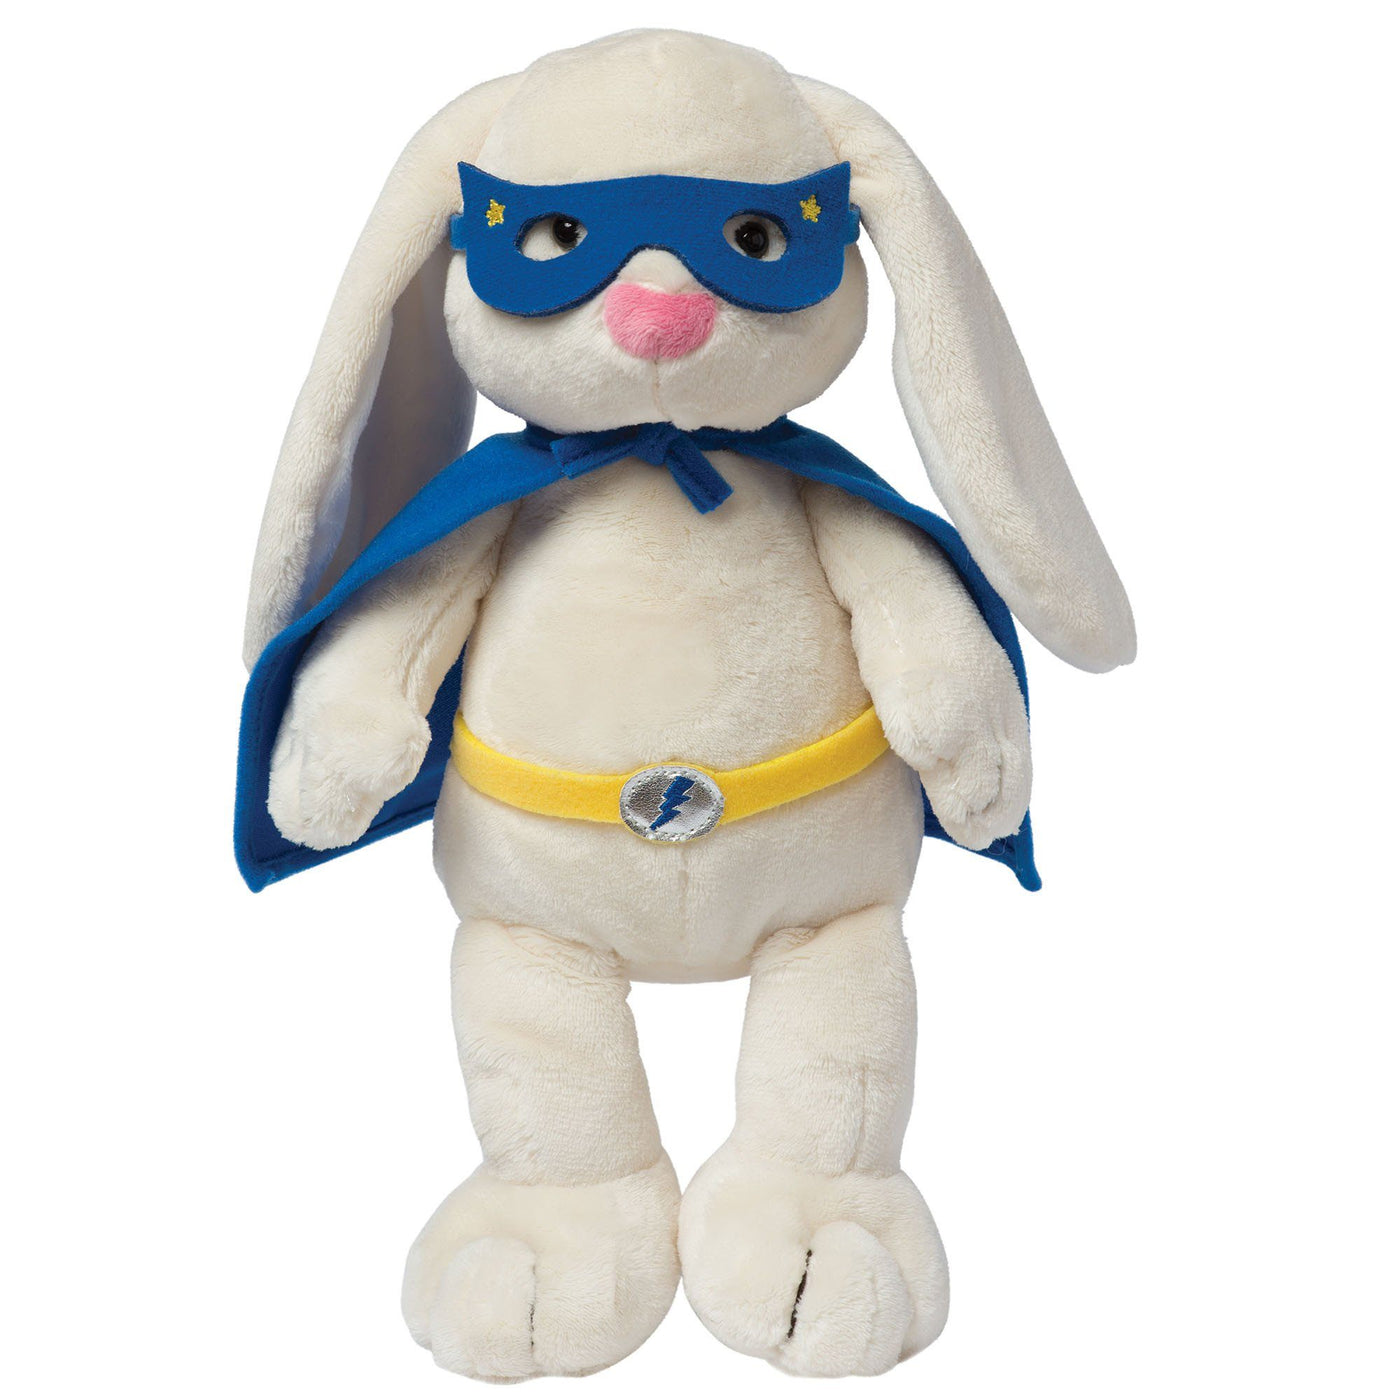 Superhero Bunny - Manhattan Toy